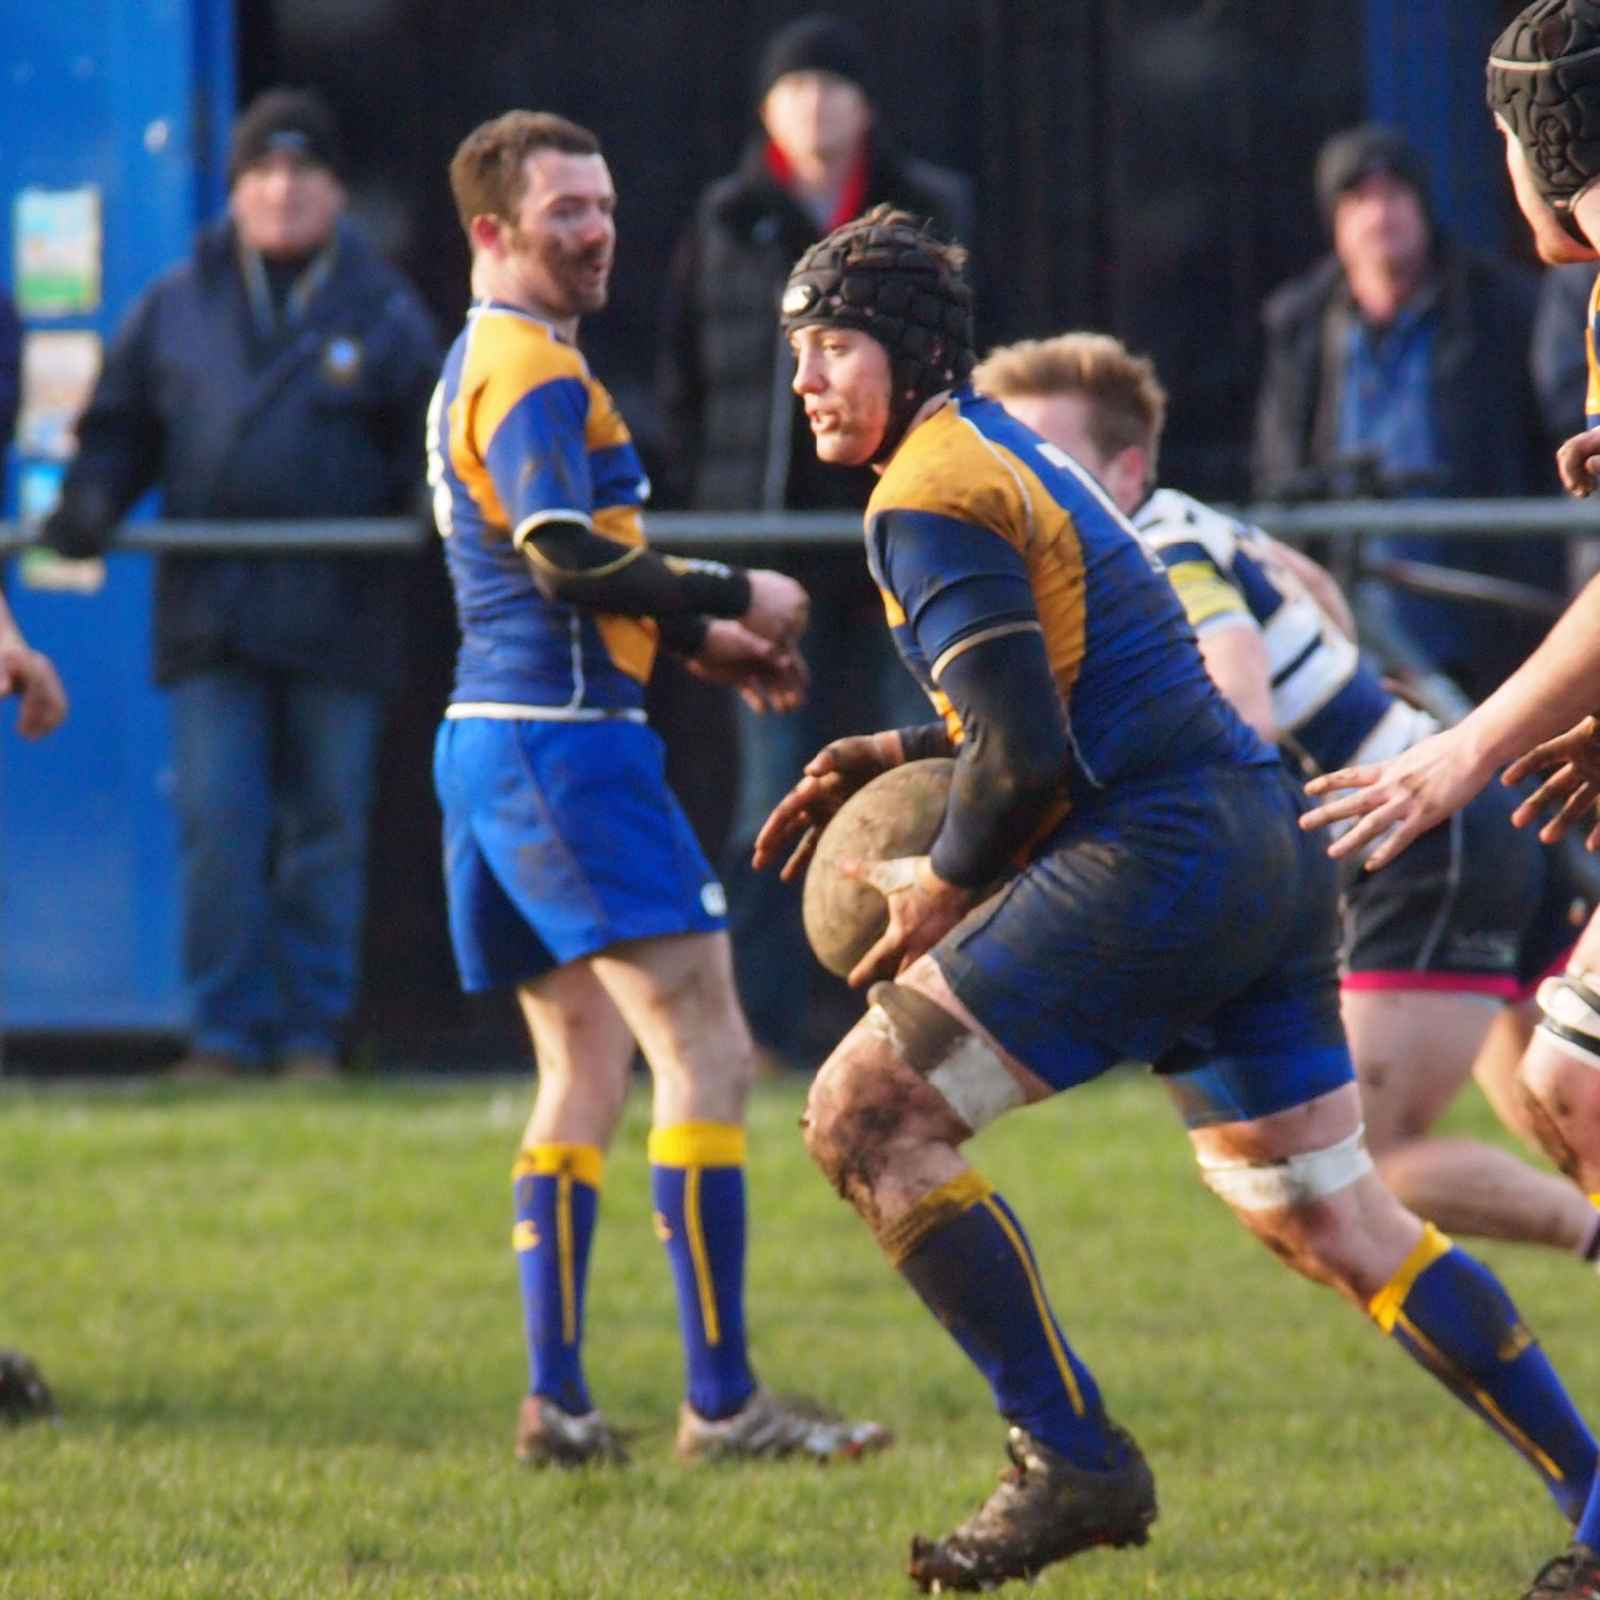 Selected 1st XV v Thanet (A) KO is 2.30 pm